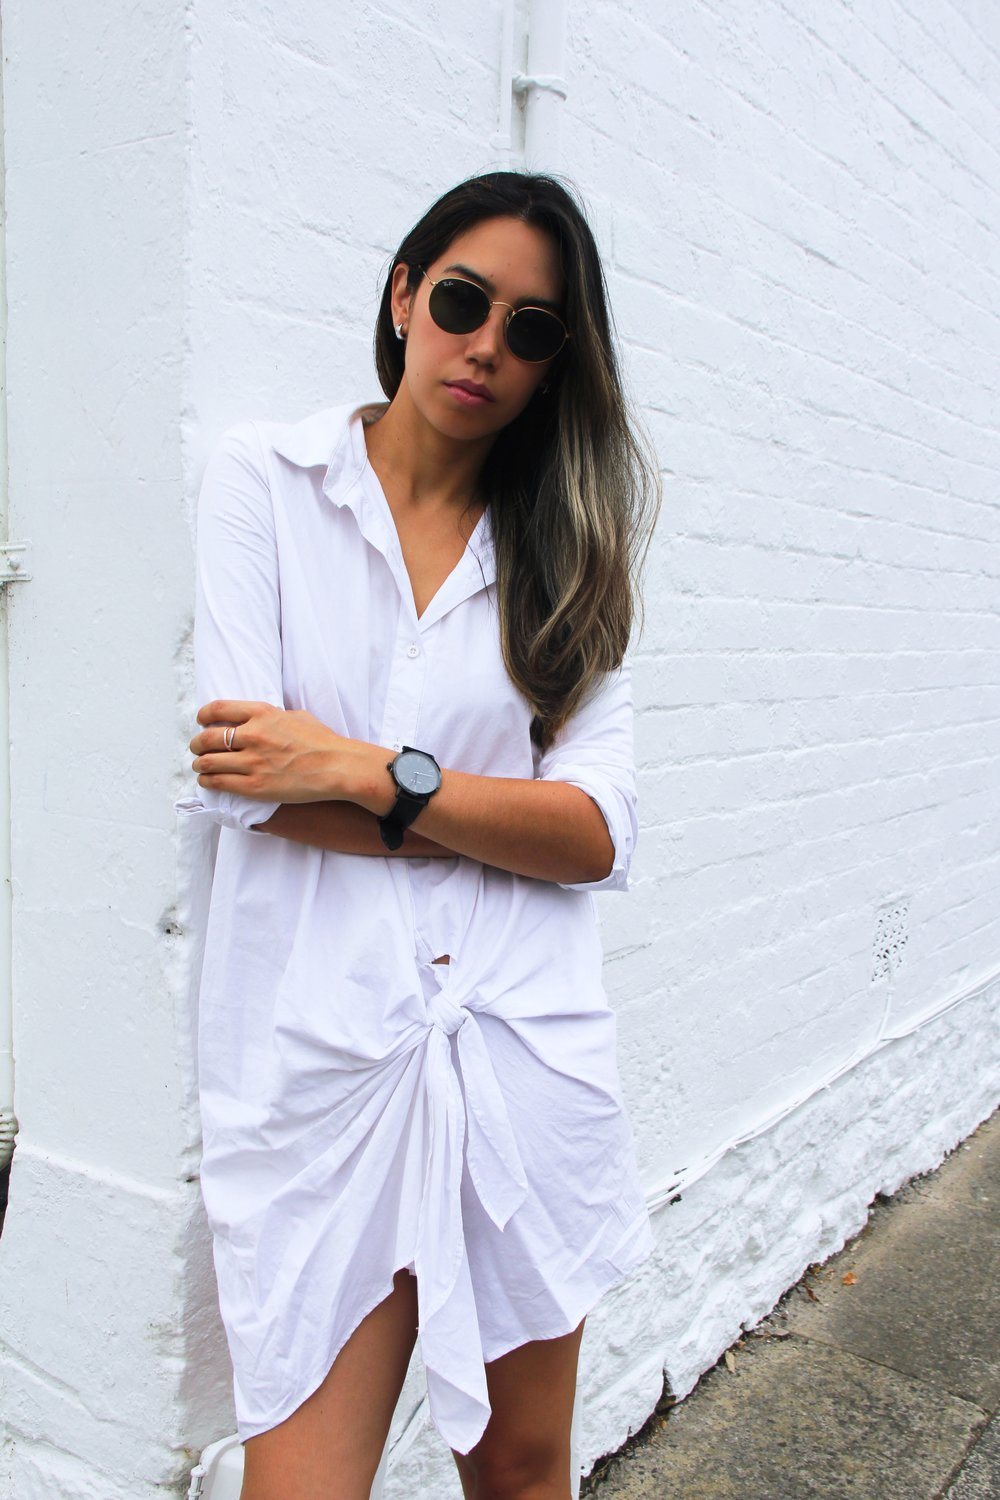 Outfit: Shirt Dress - Maurice and Eve, Shoes - Valentino sneakers, Sunglasses - Rayban, Watch - Uncle Jack lack on Black leather watch.